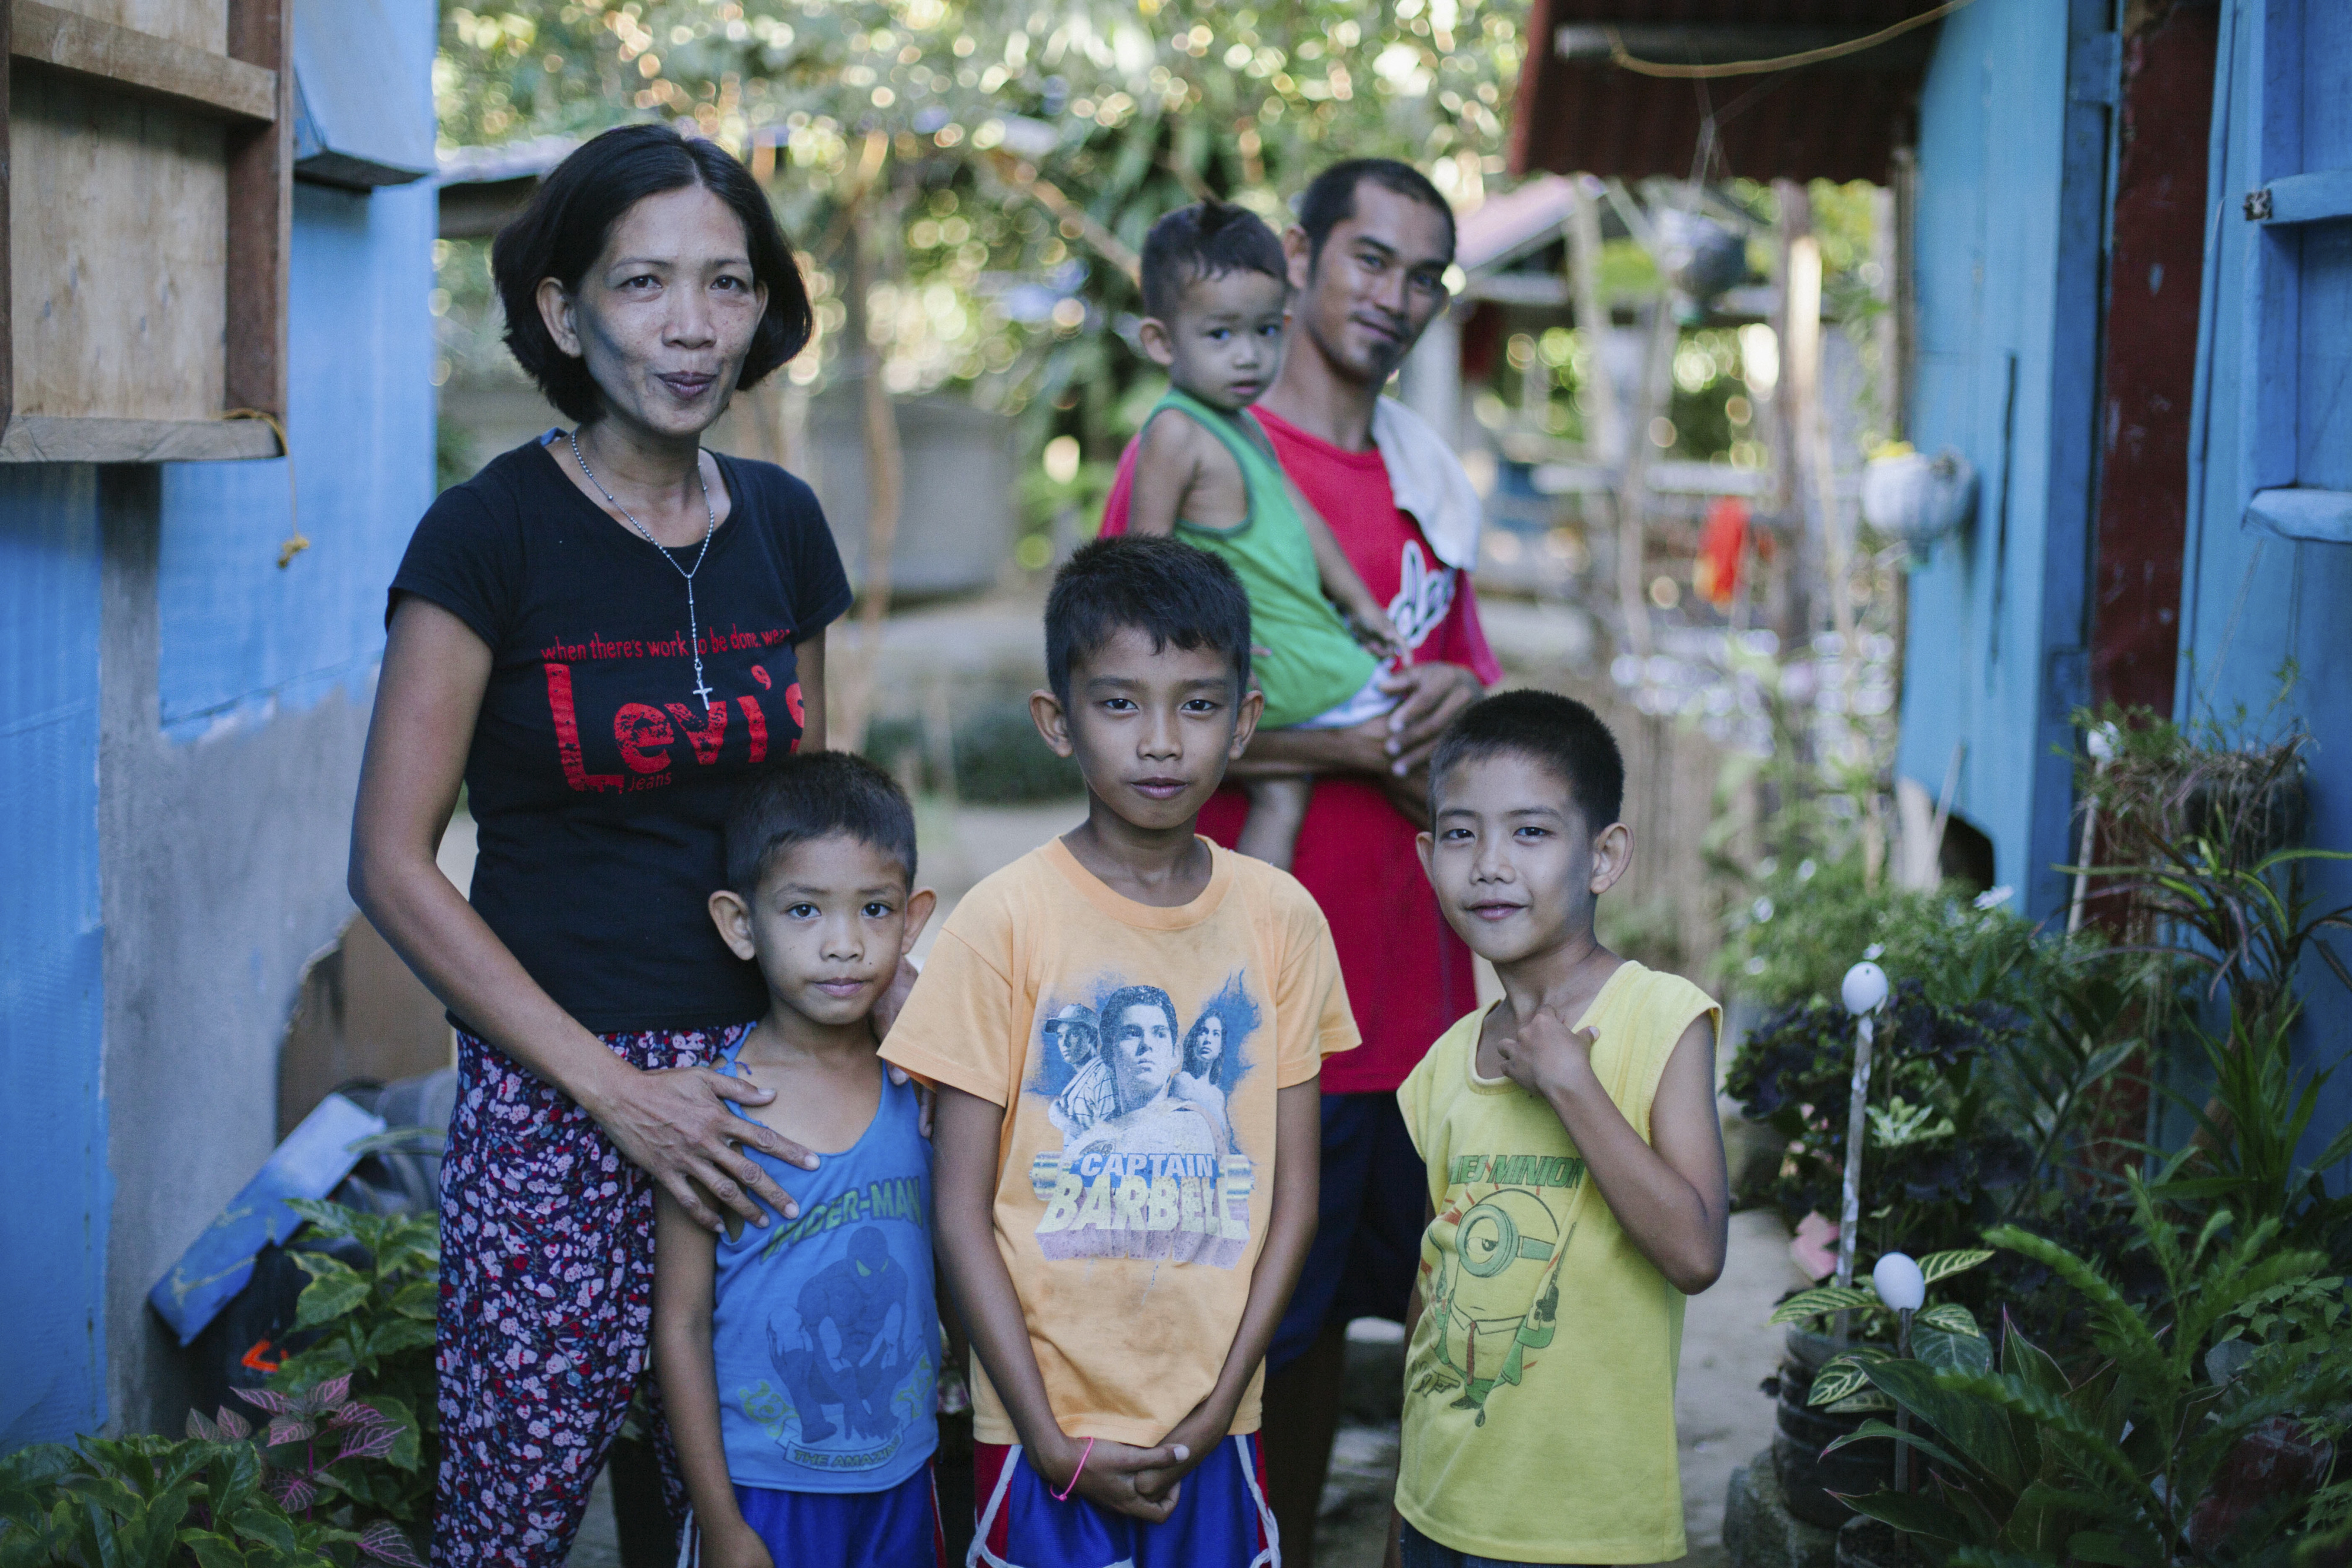 Sussett Enolva and her family stand outside their new, typhoon-resistant home in The Philippines